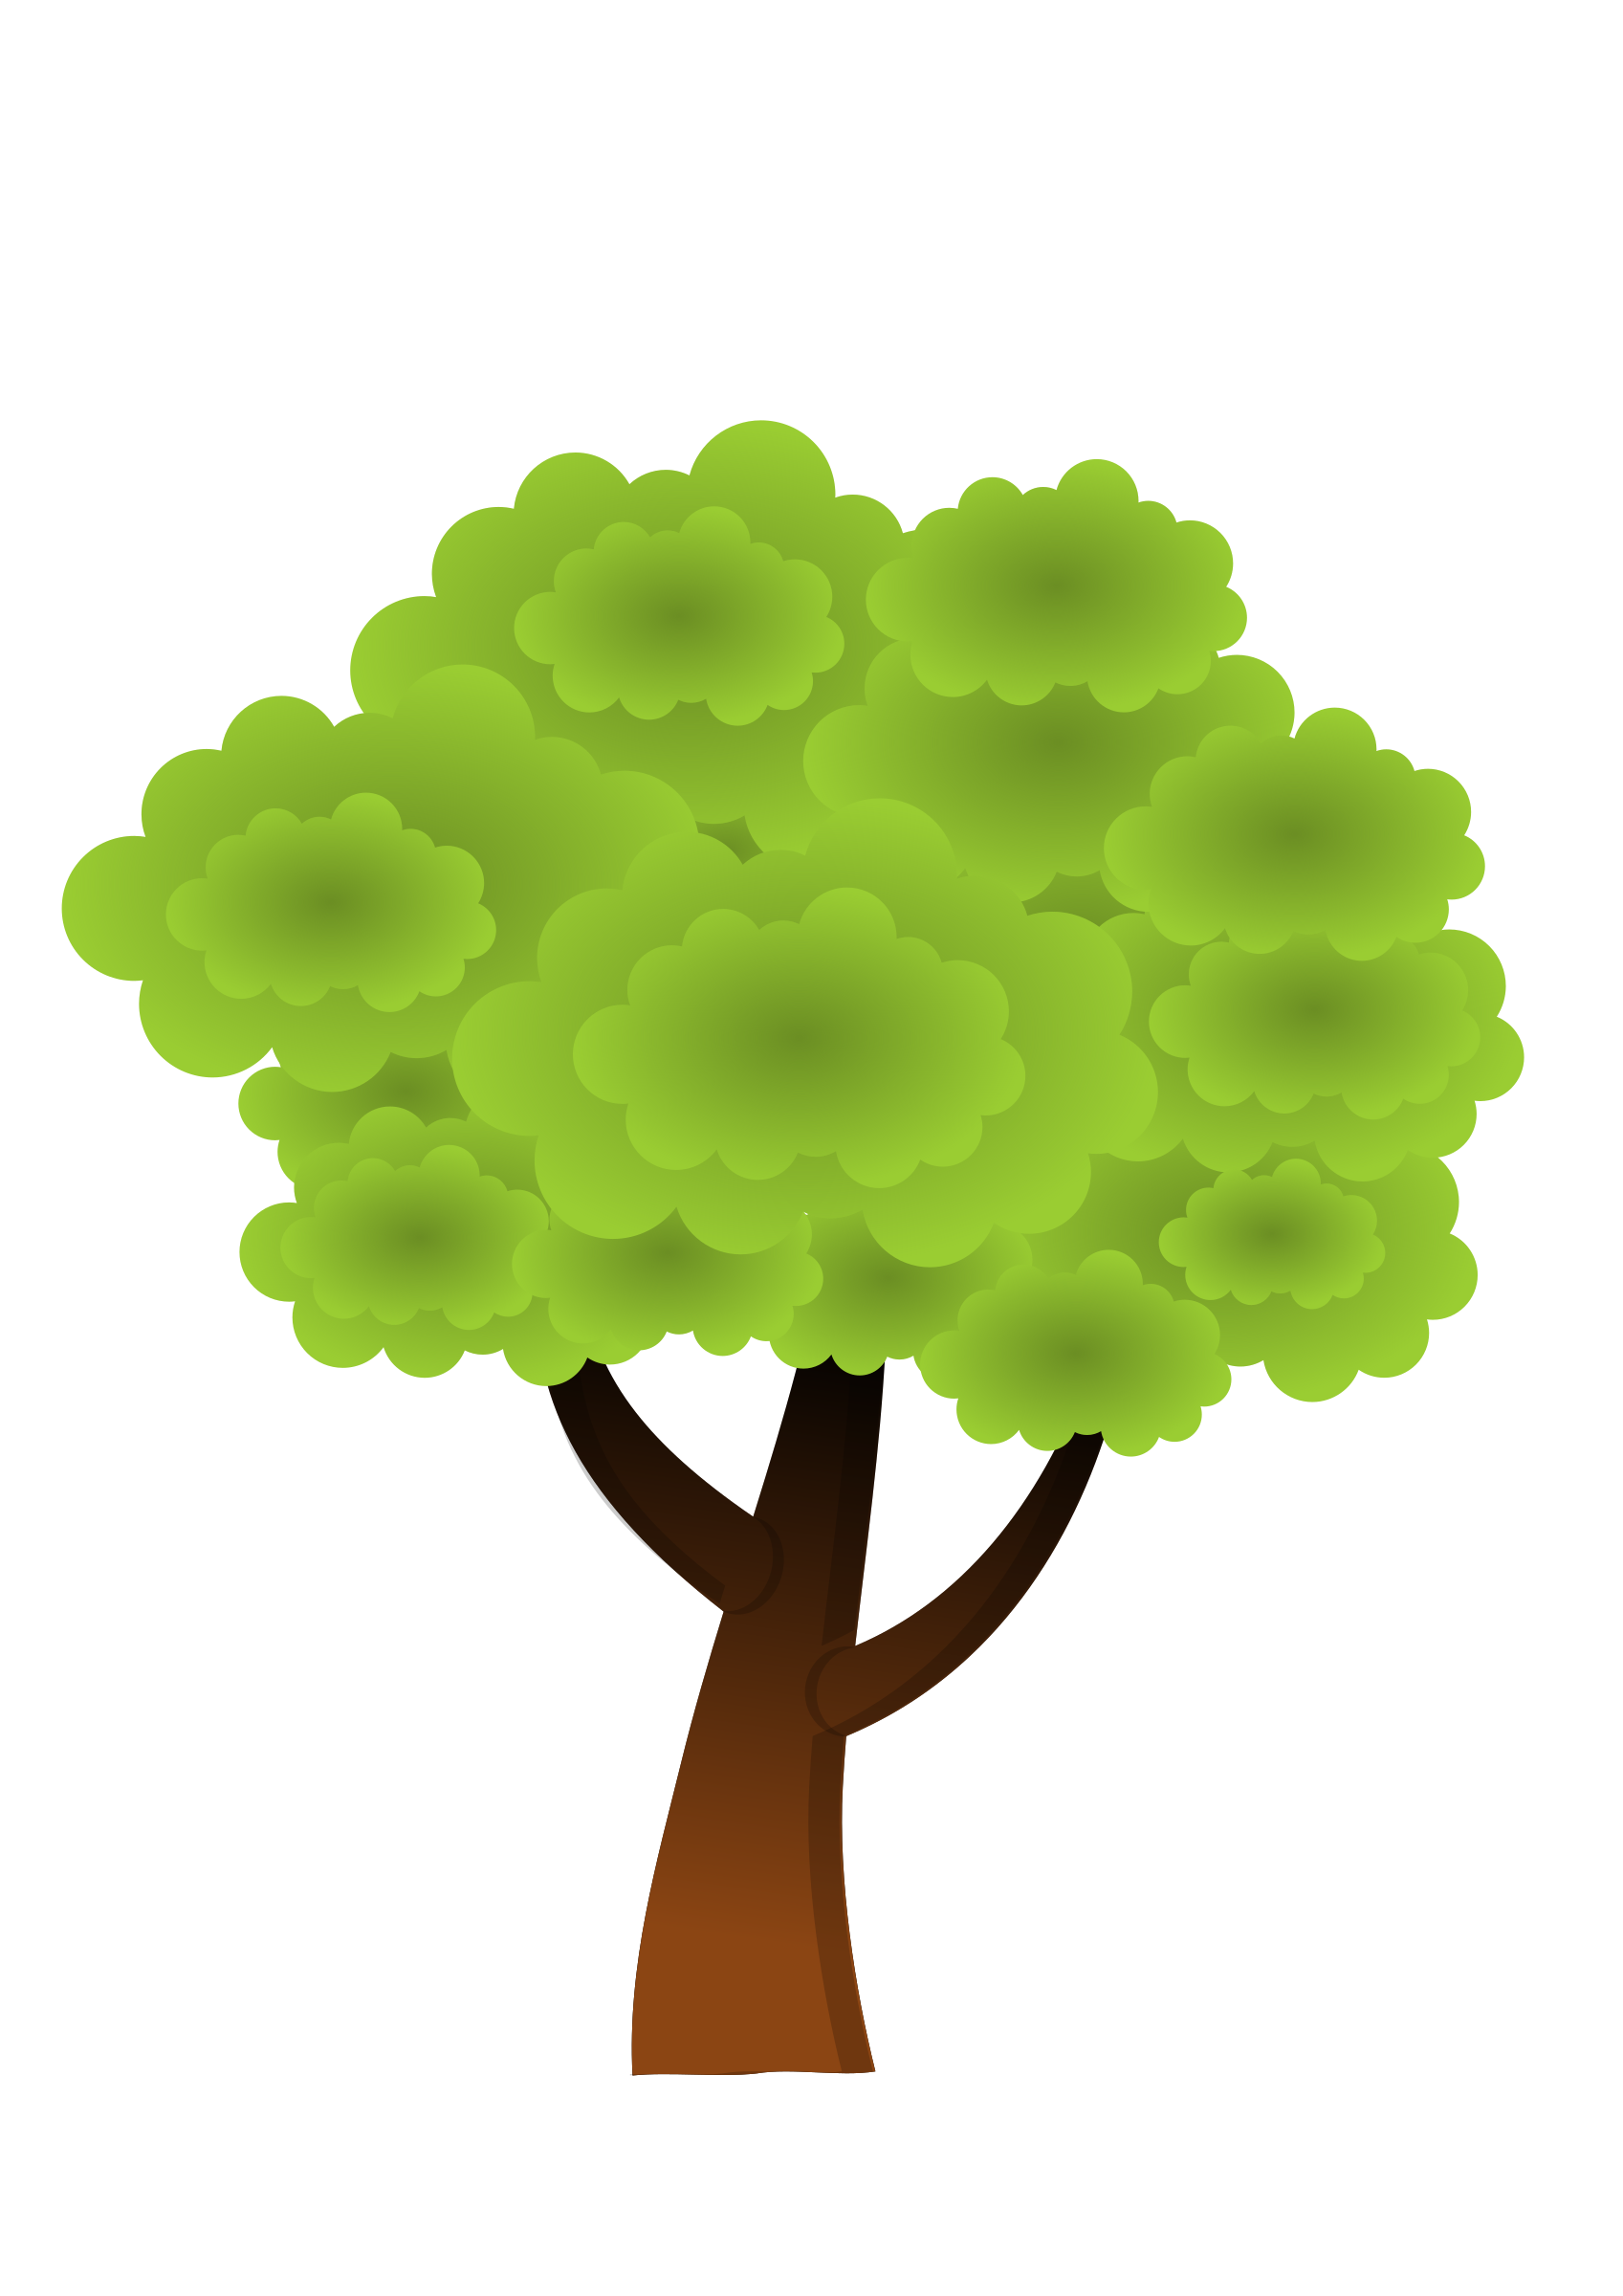 A simple tree #2 by Almeidah